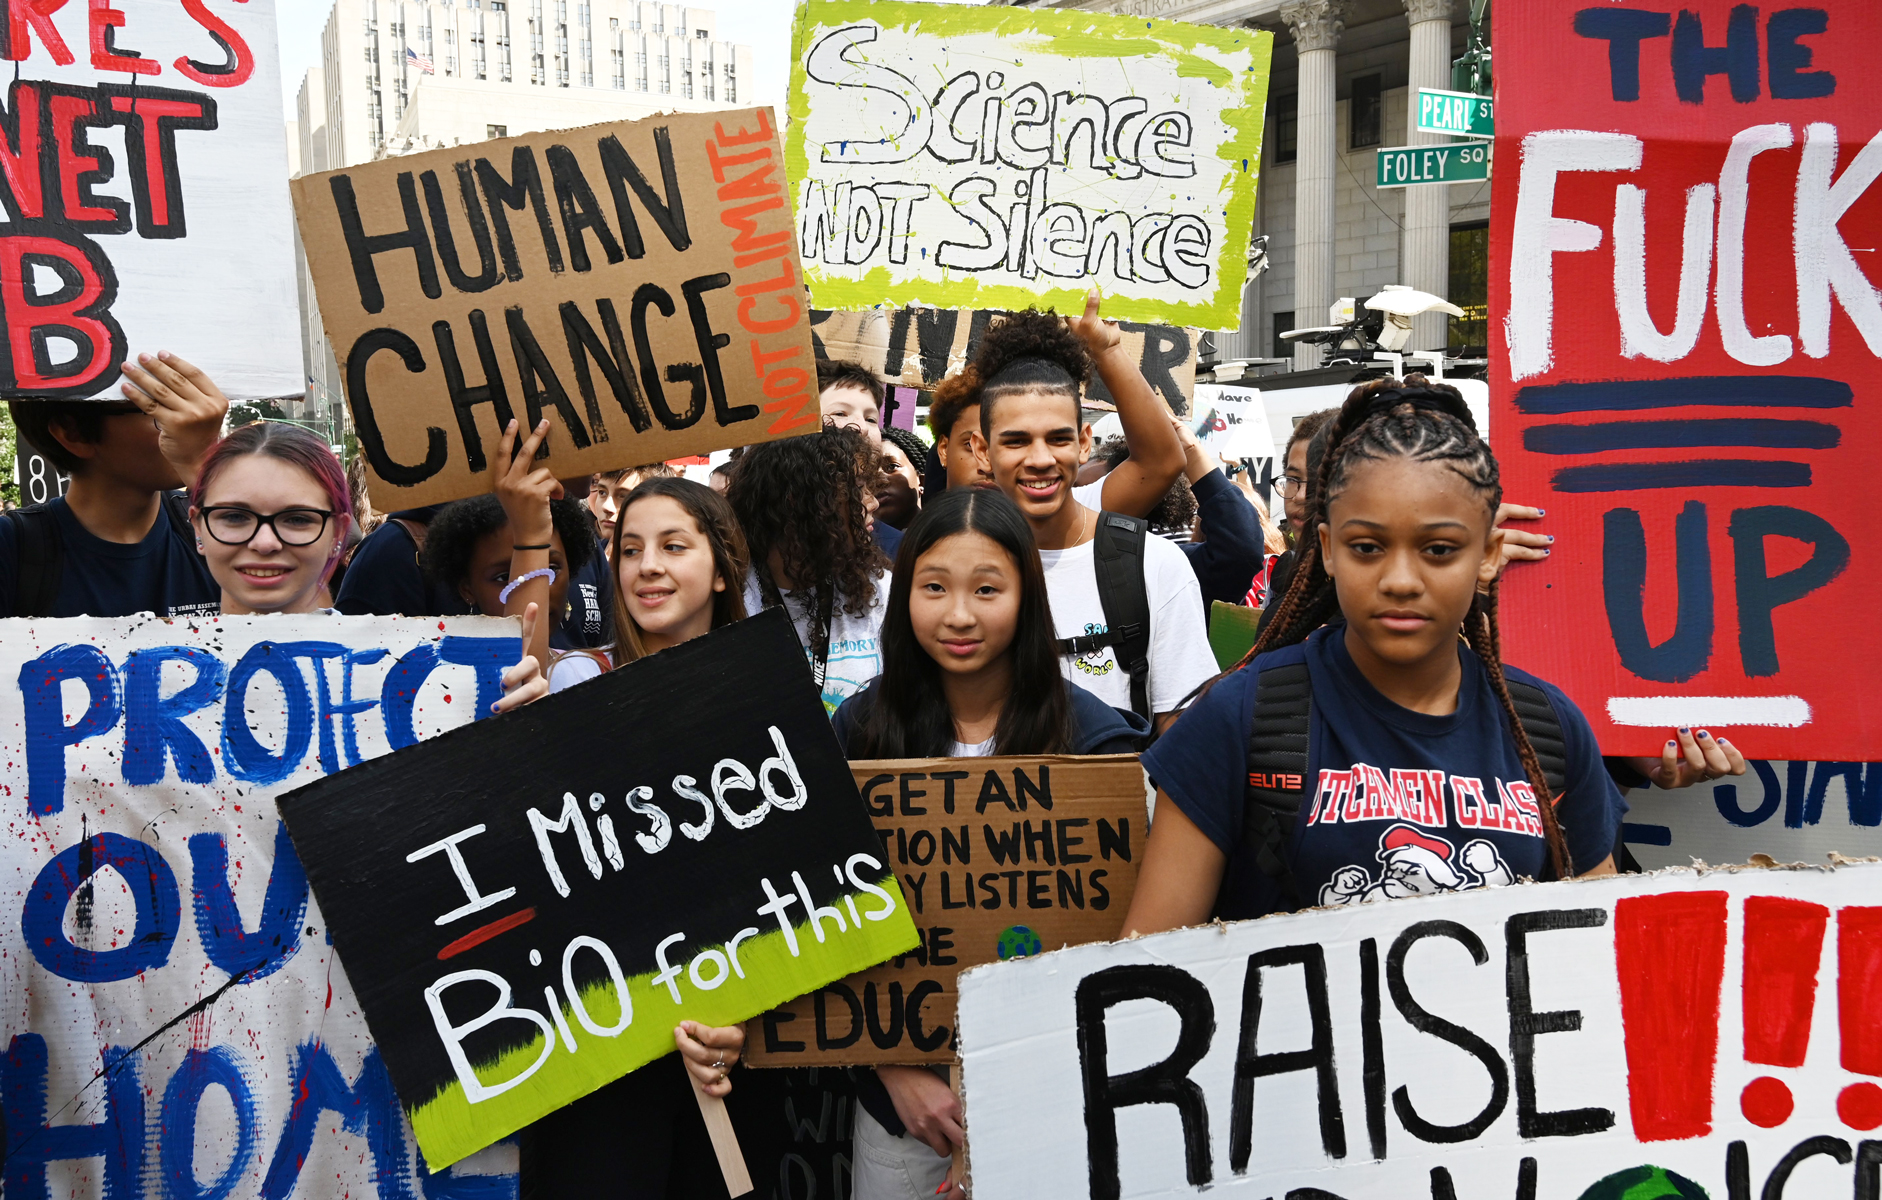 People gather during the Global Climate Strike march at Foley Square in New York September 20, 2019.